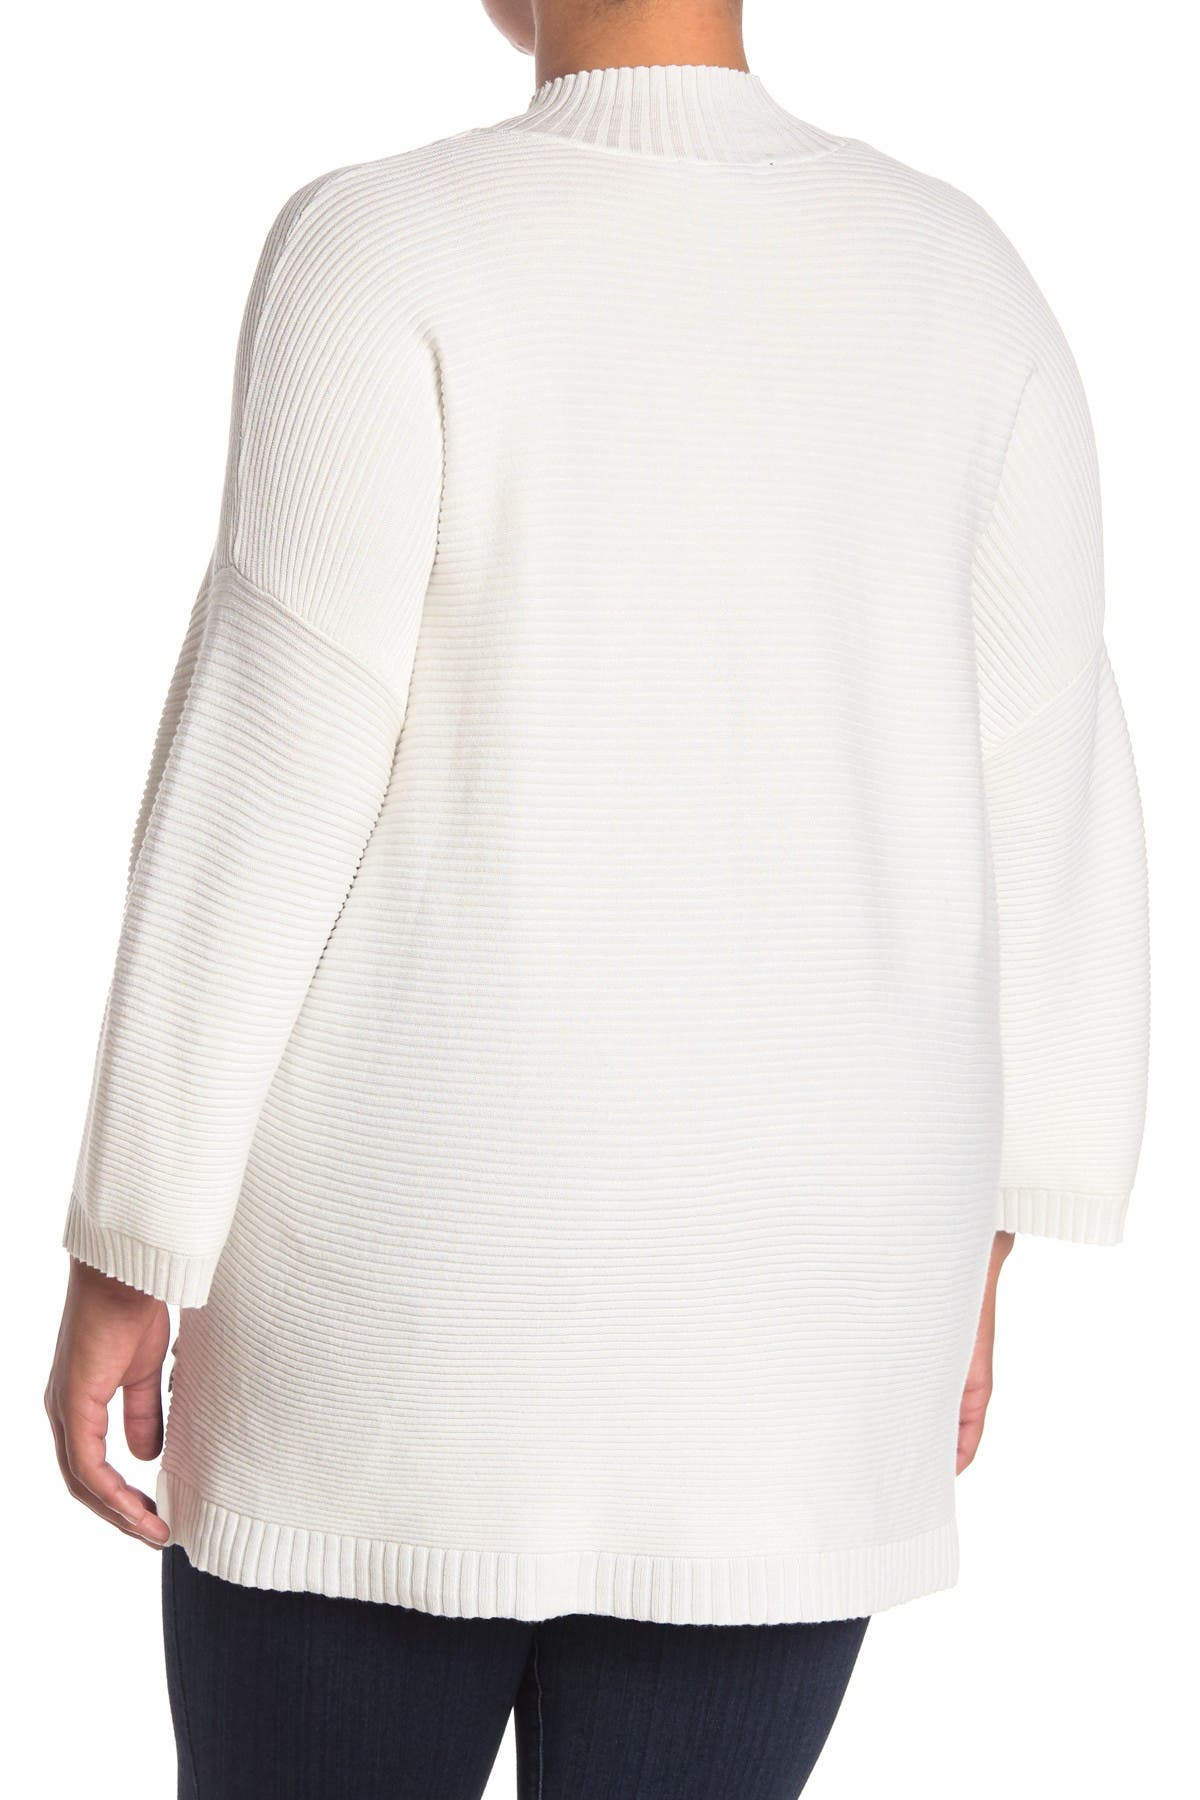 Image of Cyrus Ottoman Sweater